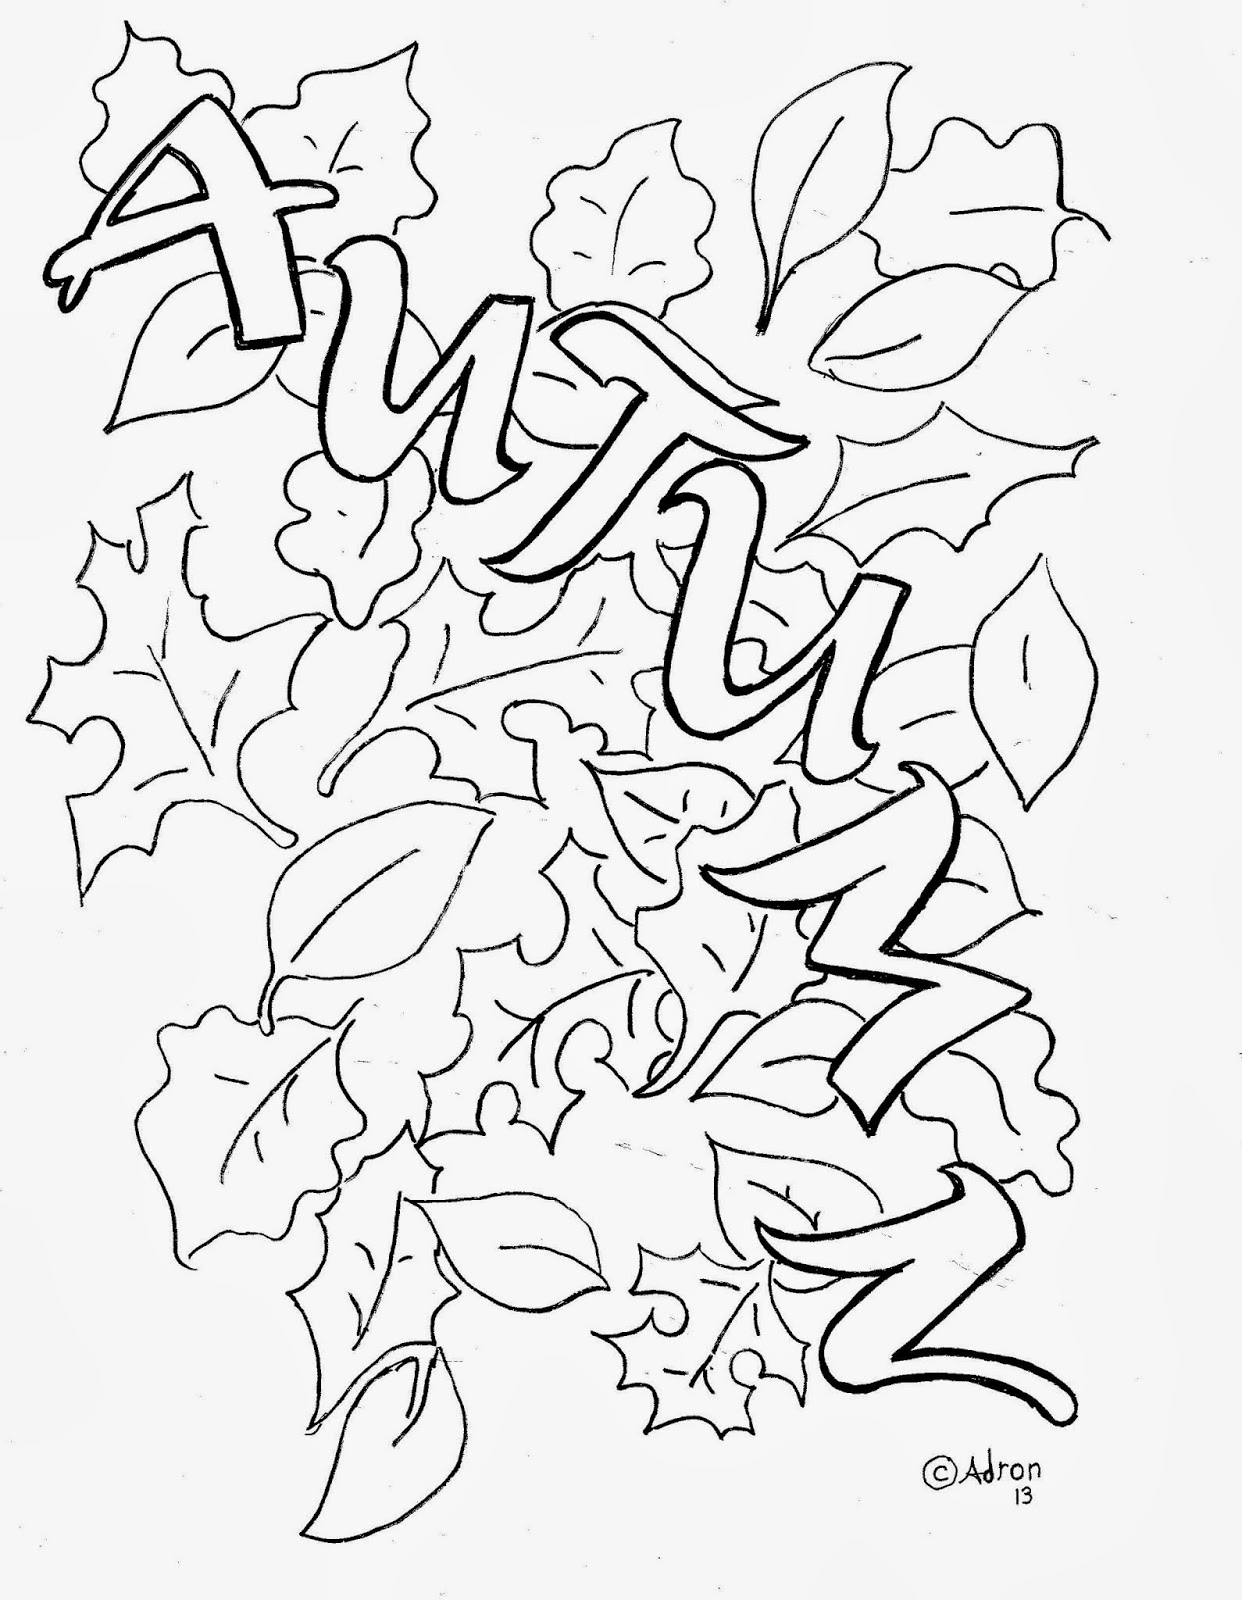 Coloring Pages For Kids By Mr Adron Autumn Leaves Coloring Page Free Kids Print And Color Page